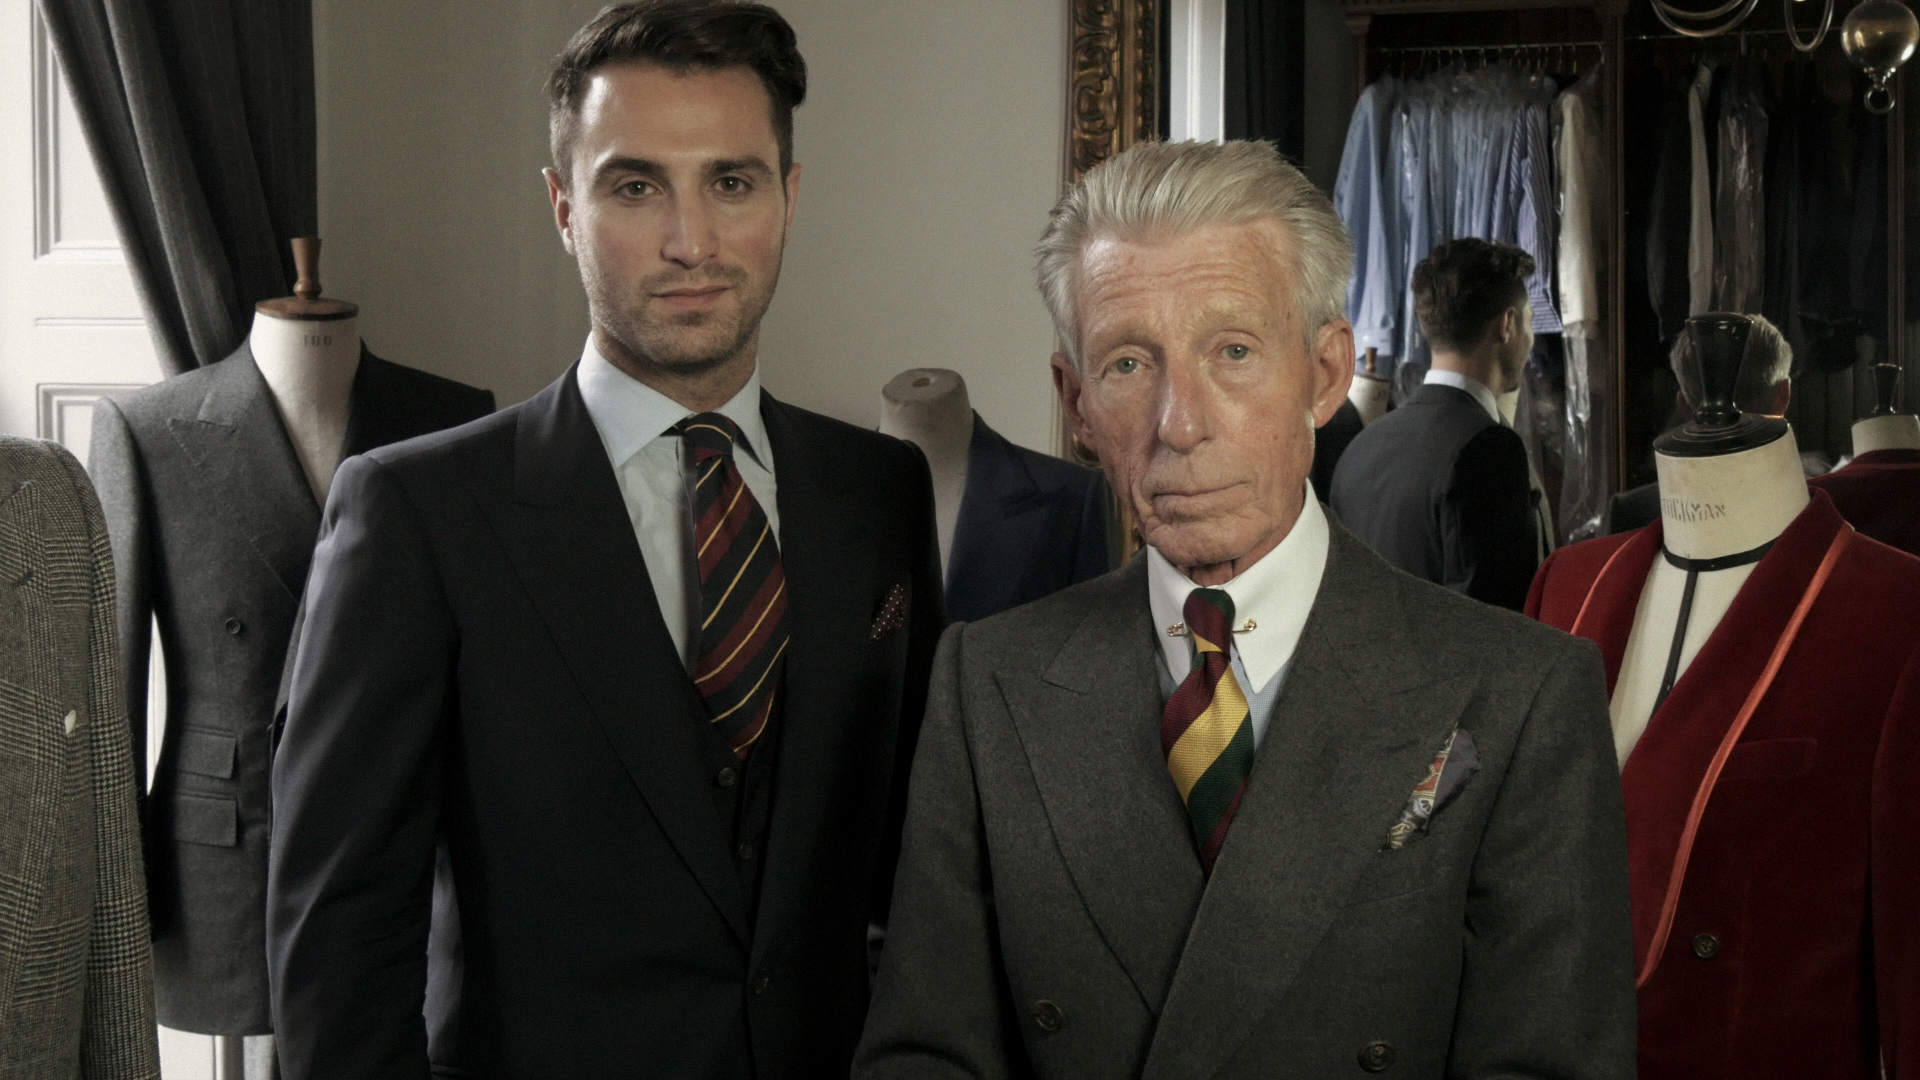 Edward and Dominic on Bespoke and made to measure.